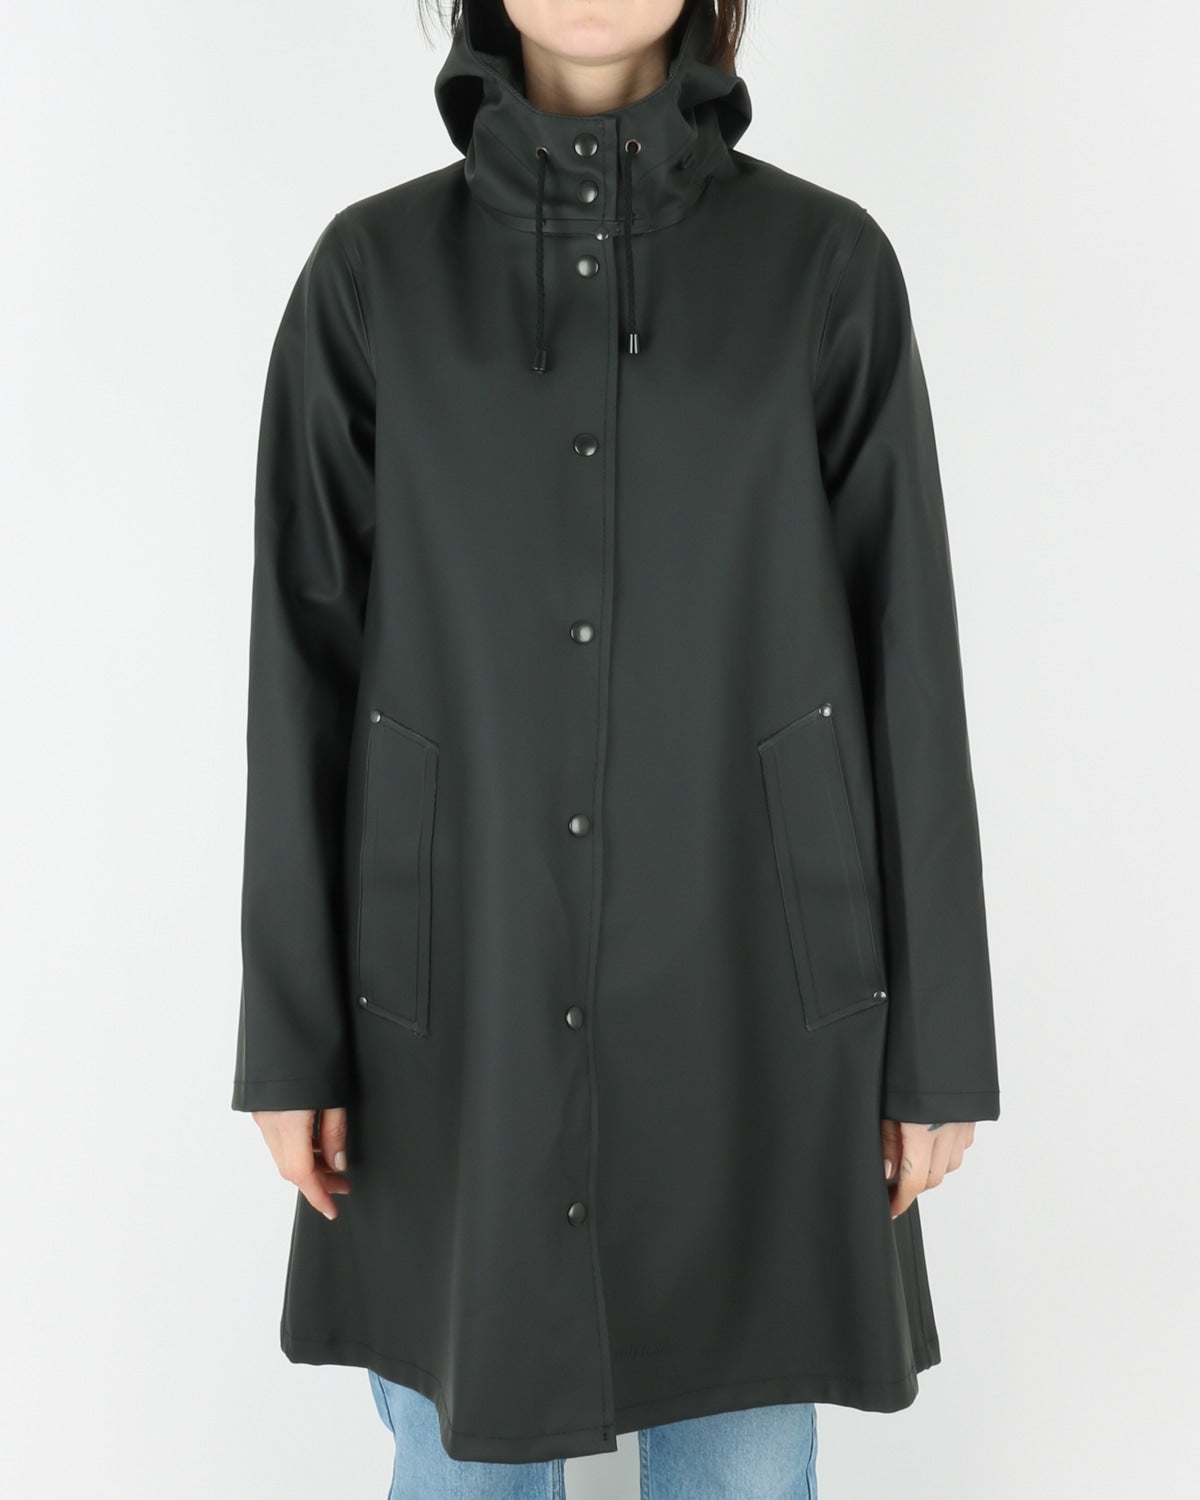 stutterheim_mosebacke_raincoat_black_view_1_2